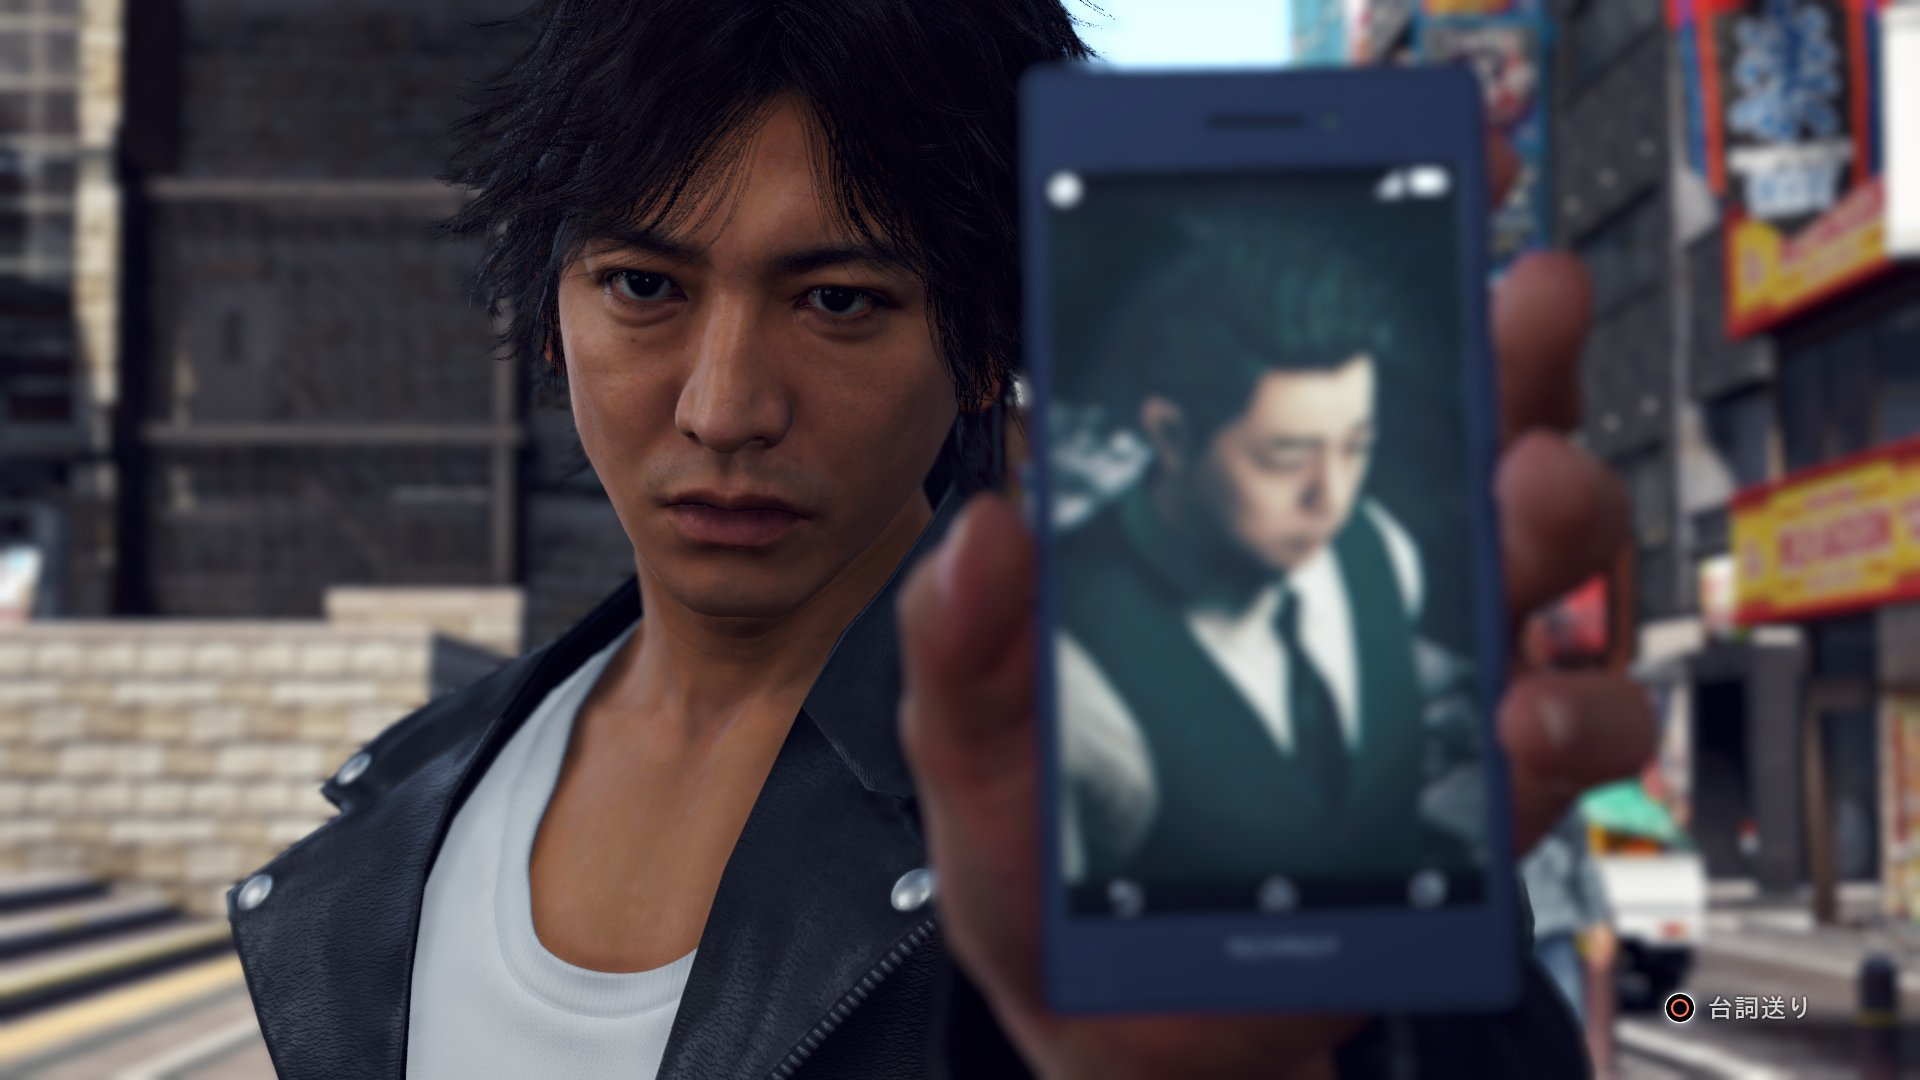 Yagami holding up a phone in Judgment